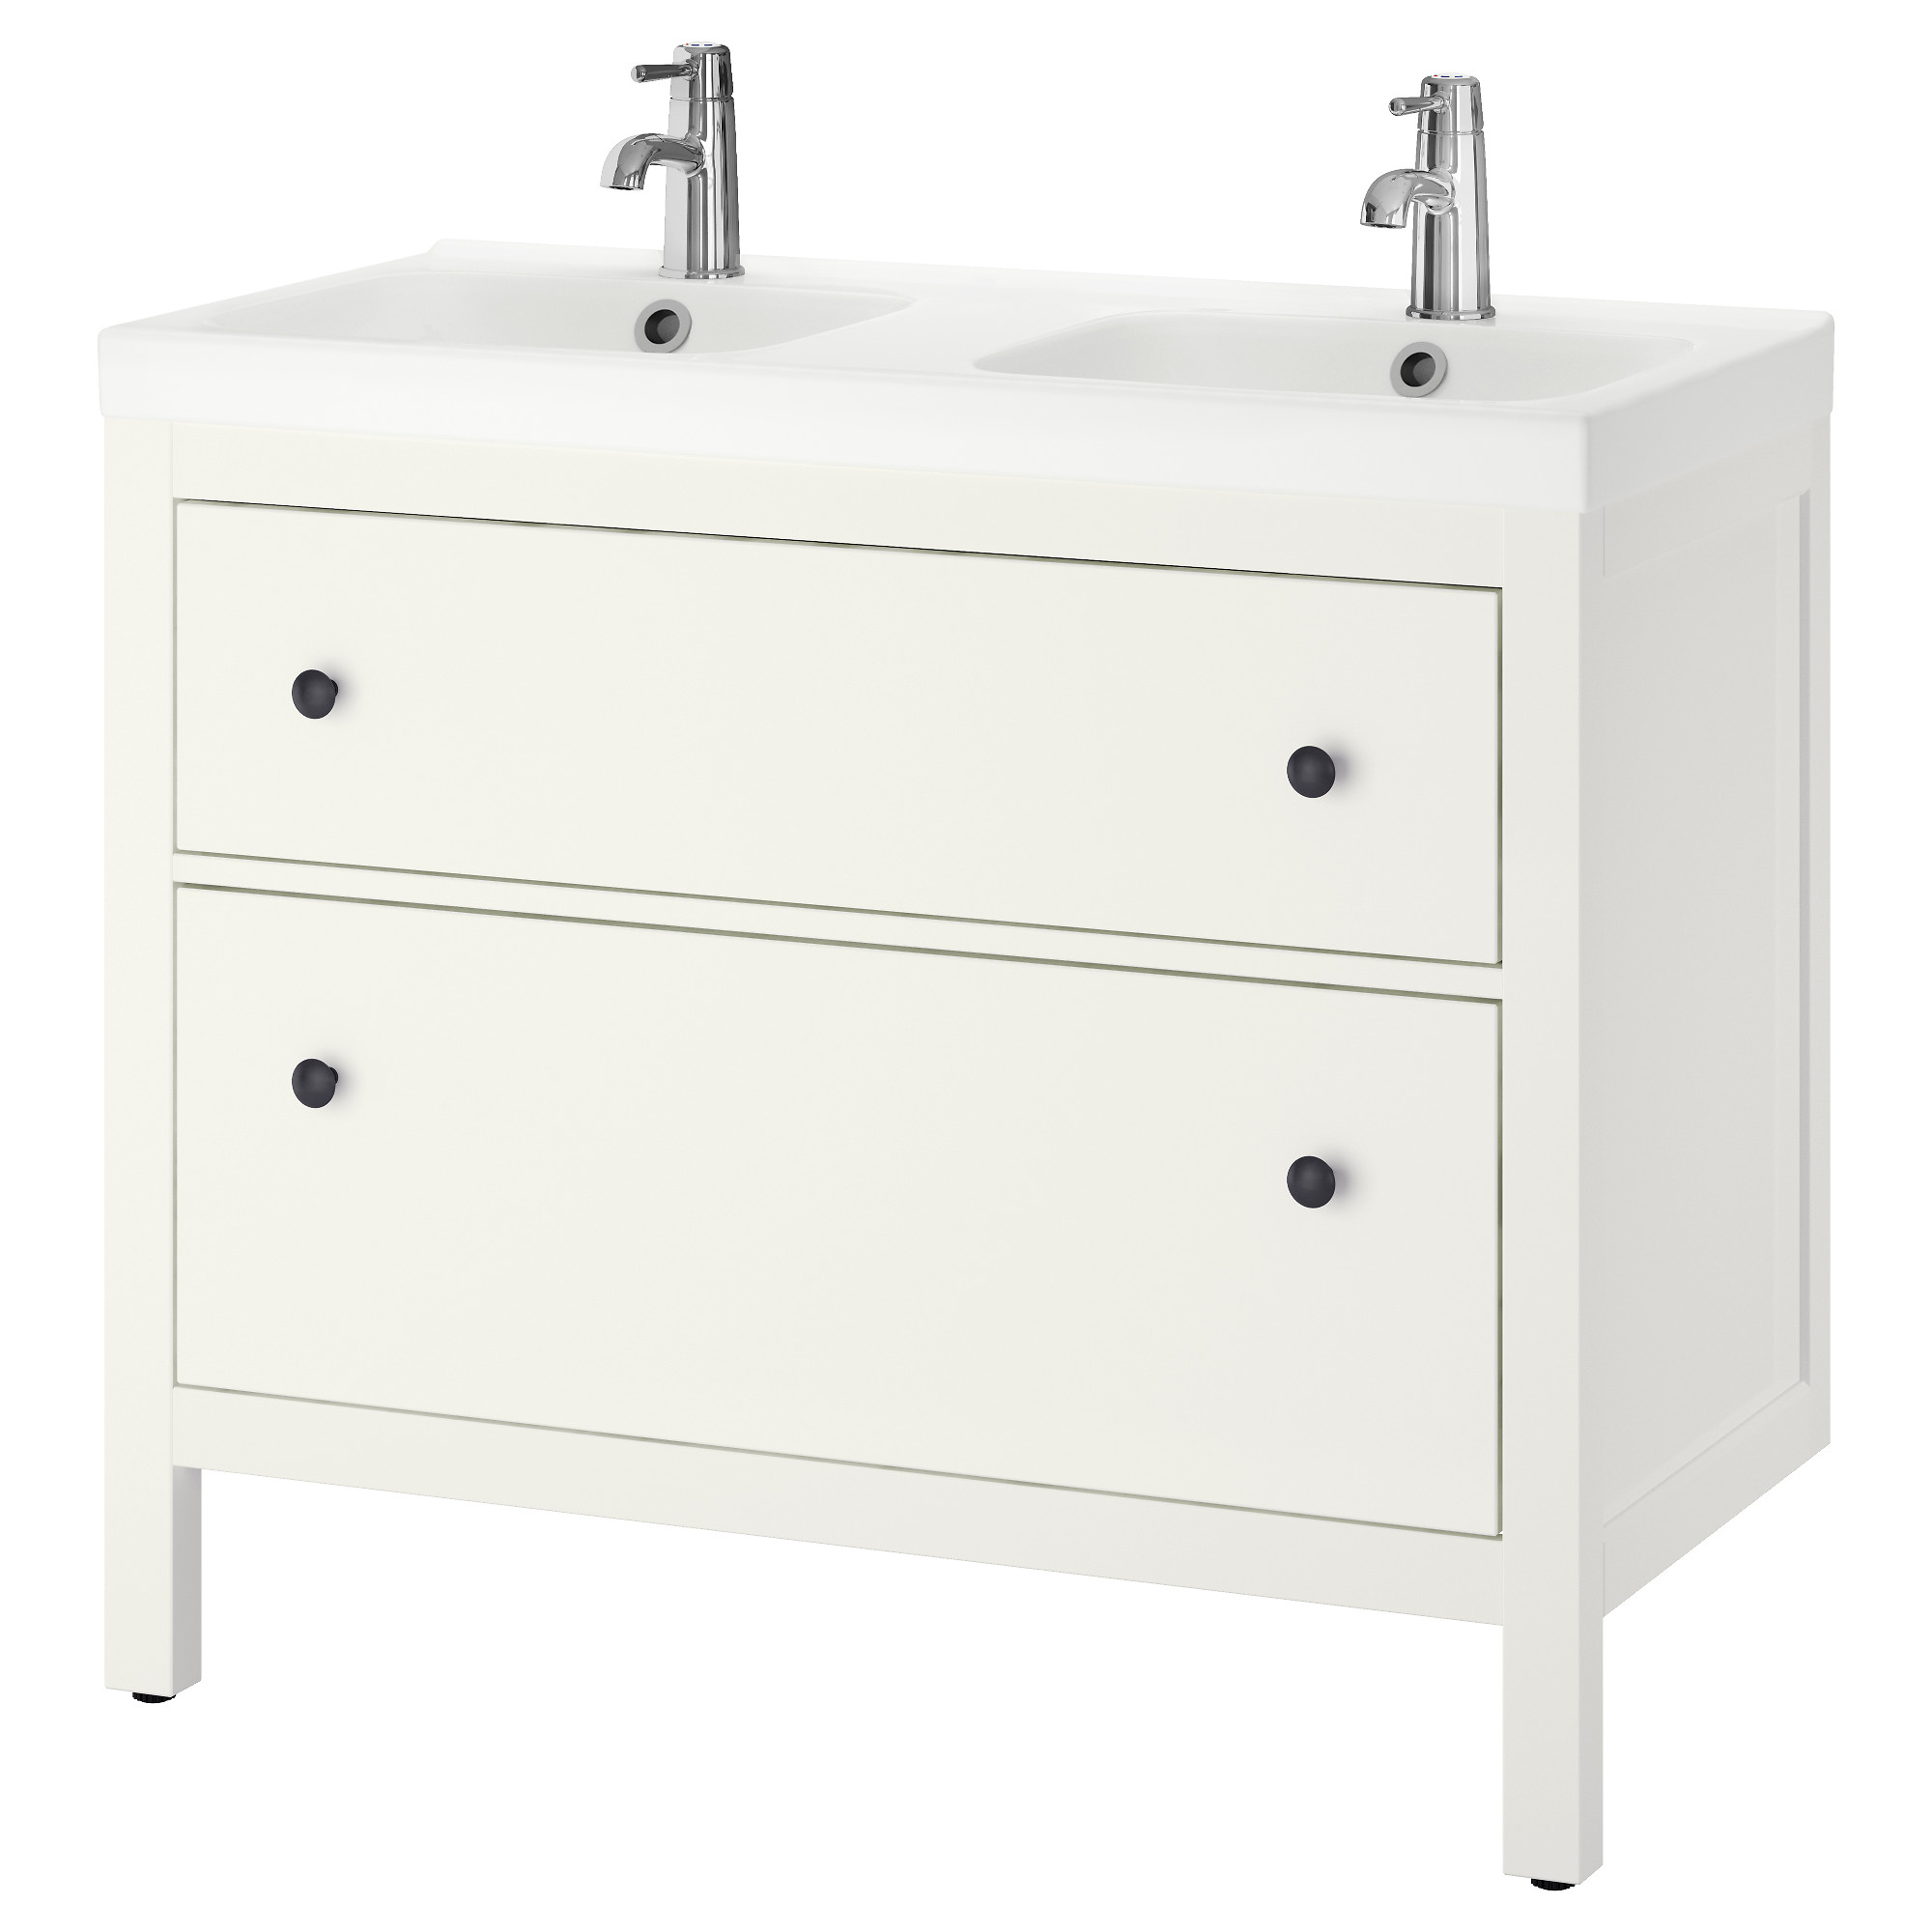 HEMNES   ODENSVIK sink cabinet with 2 drawers  white Width  40 1 2. Bathroom Vanities   Sink Cabinets   Countertops   IKEA